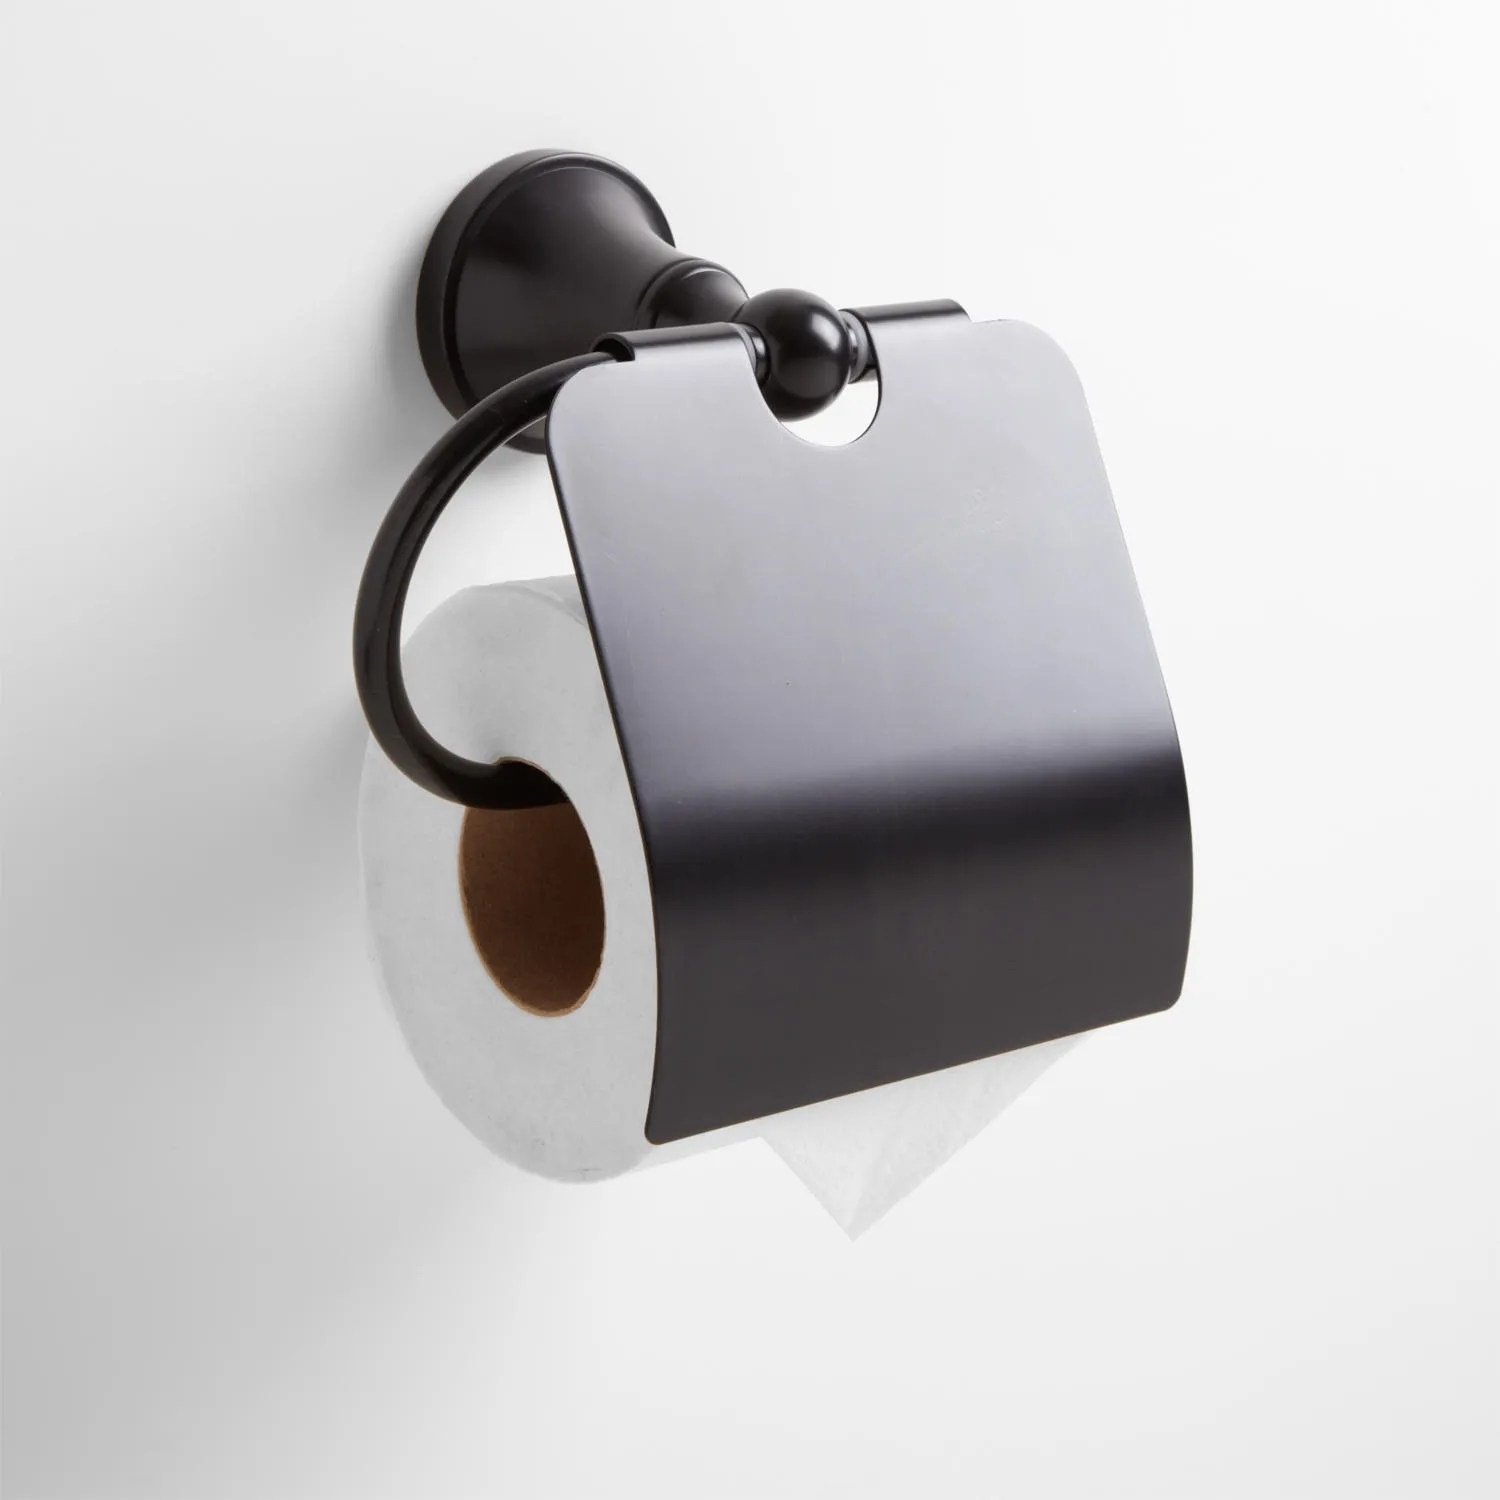 Concealed Toilet Paper Holder Seattle Collection Toilet Paper Holder In Dark Oil Rubbed